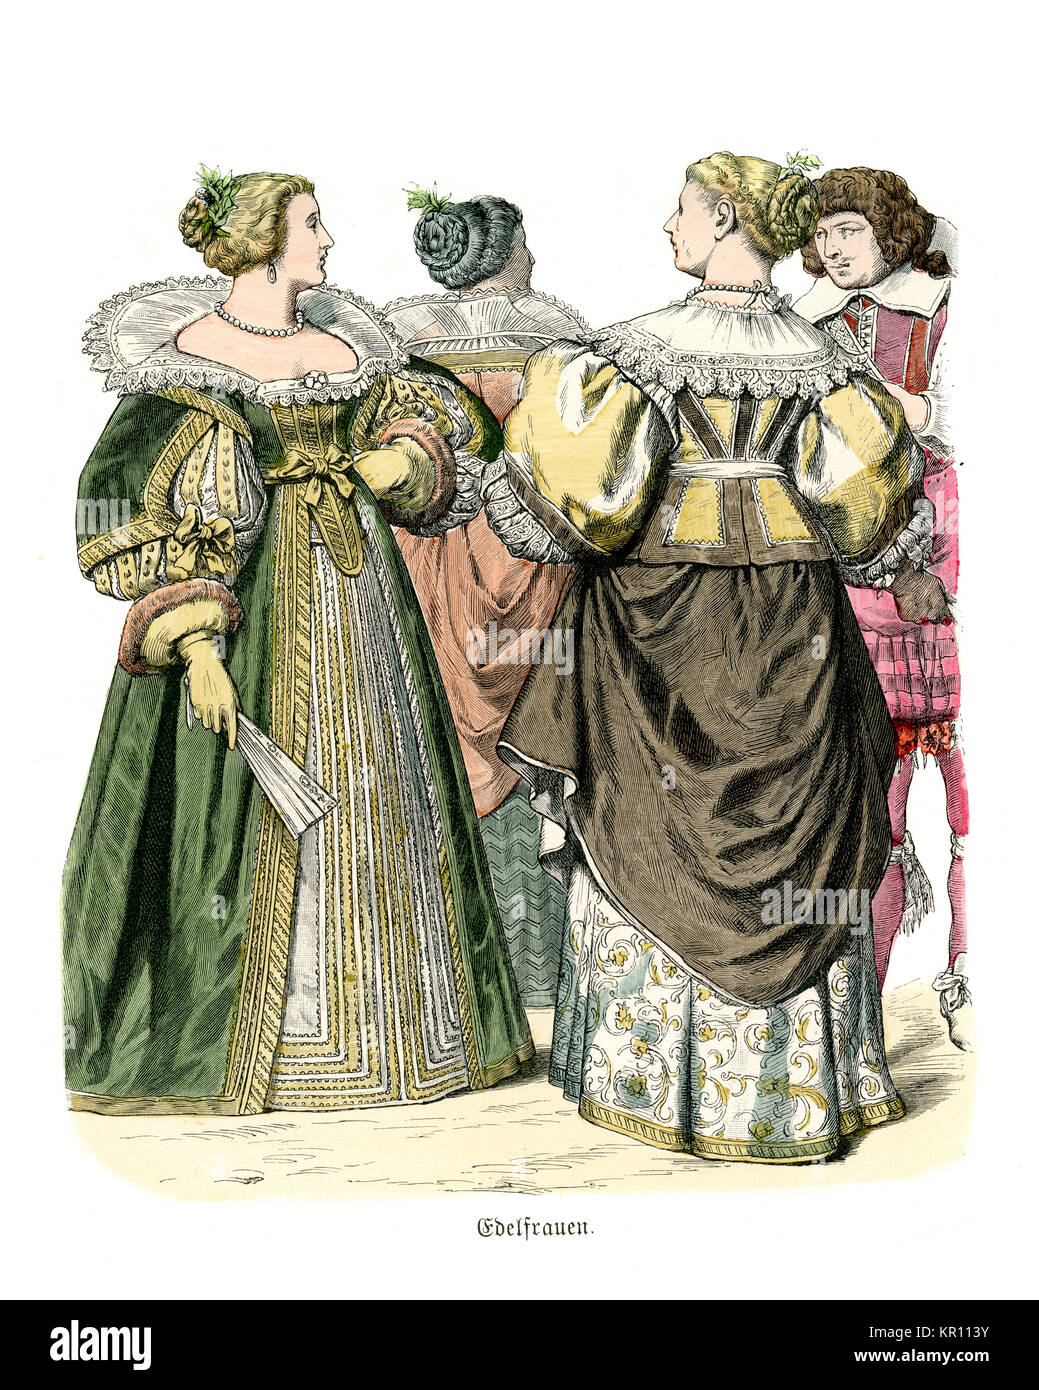 History of Fashion, Costumes of French noblewomen of the mid 17th Century - Stock Image